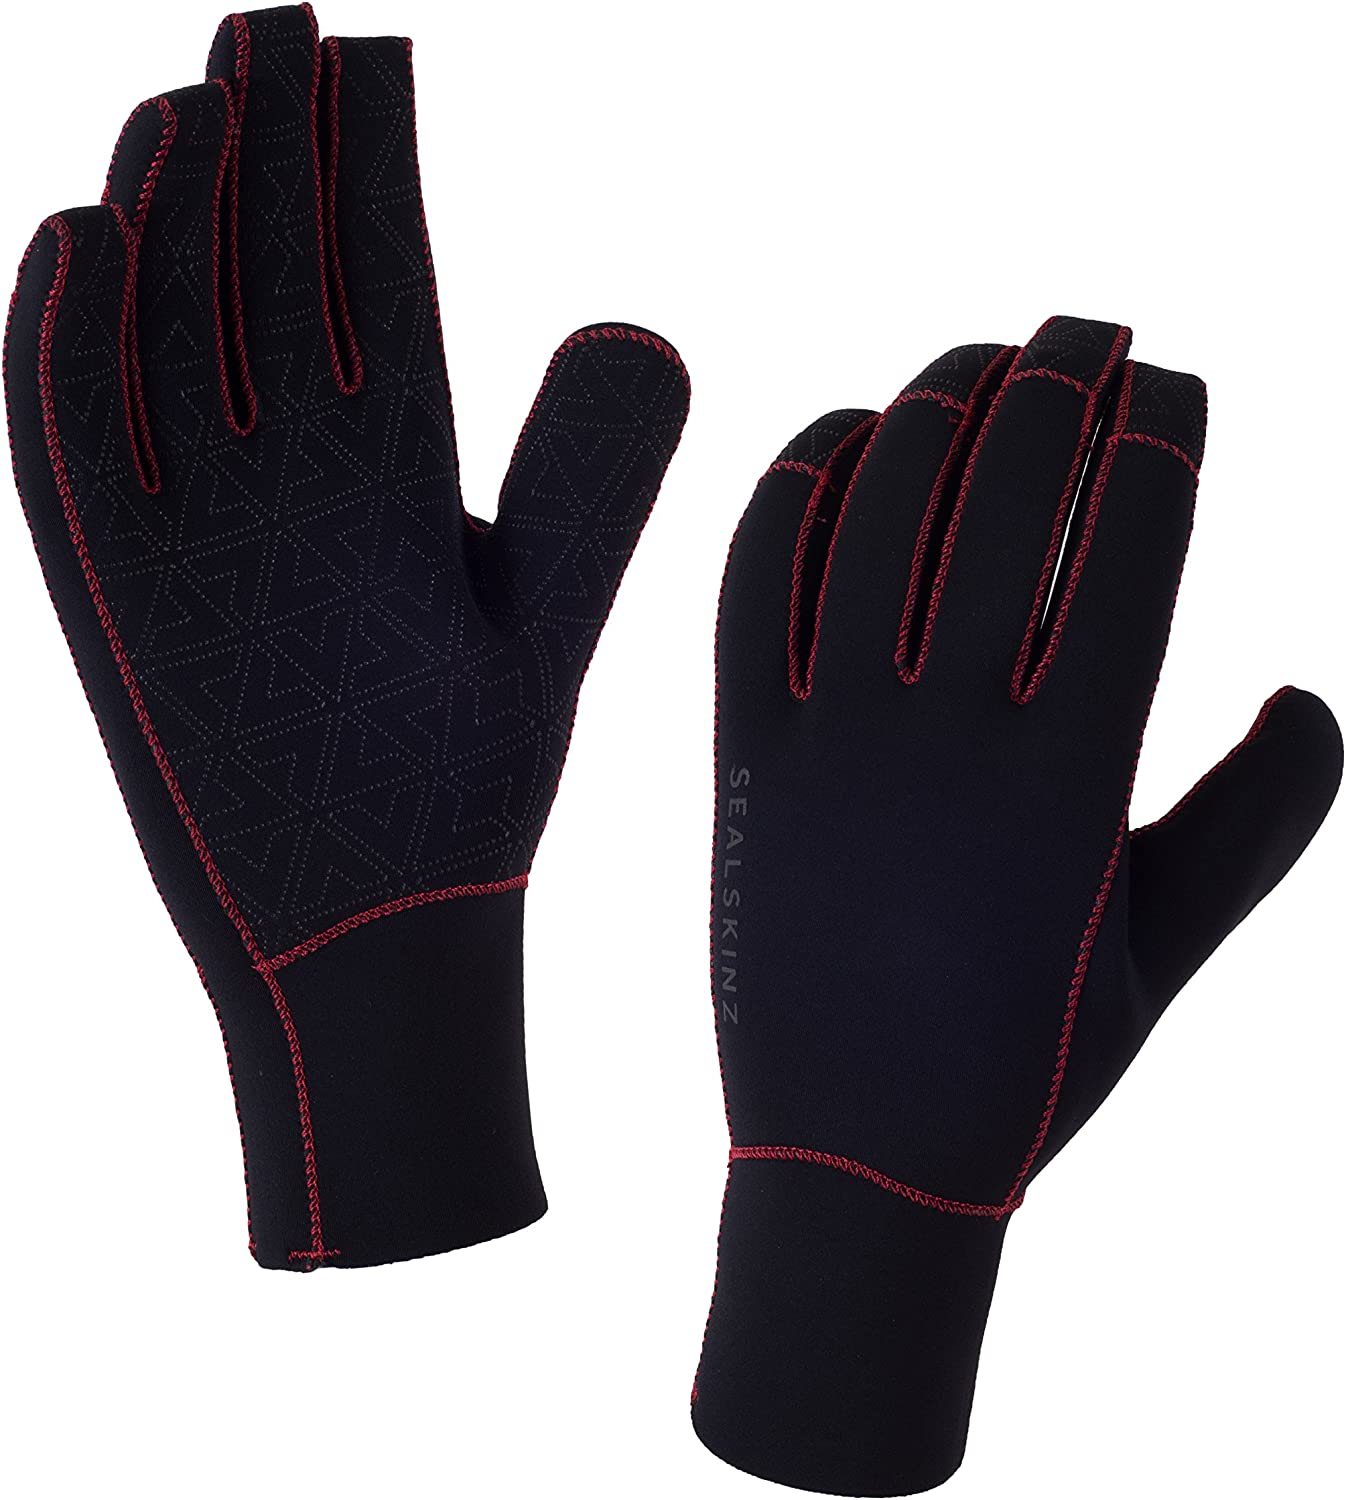 Sealskinz All Weather Waterproof and Breathable Cycle Glove Black//Navy